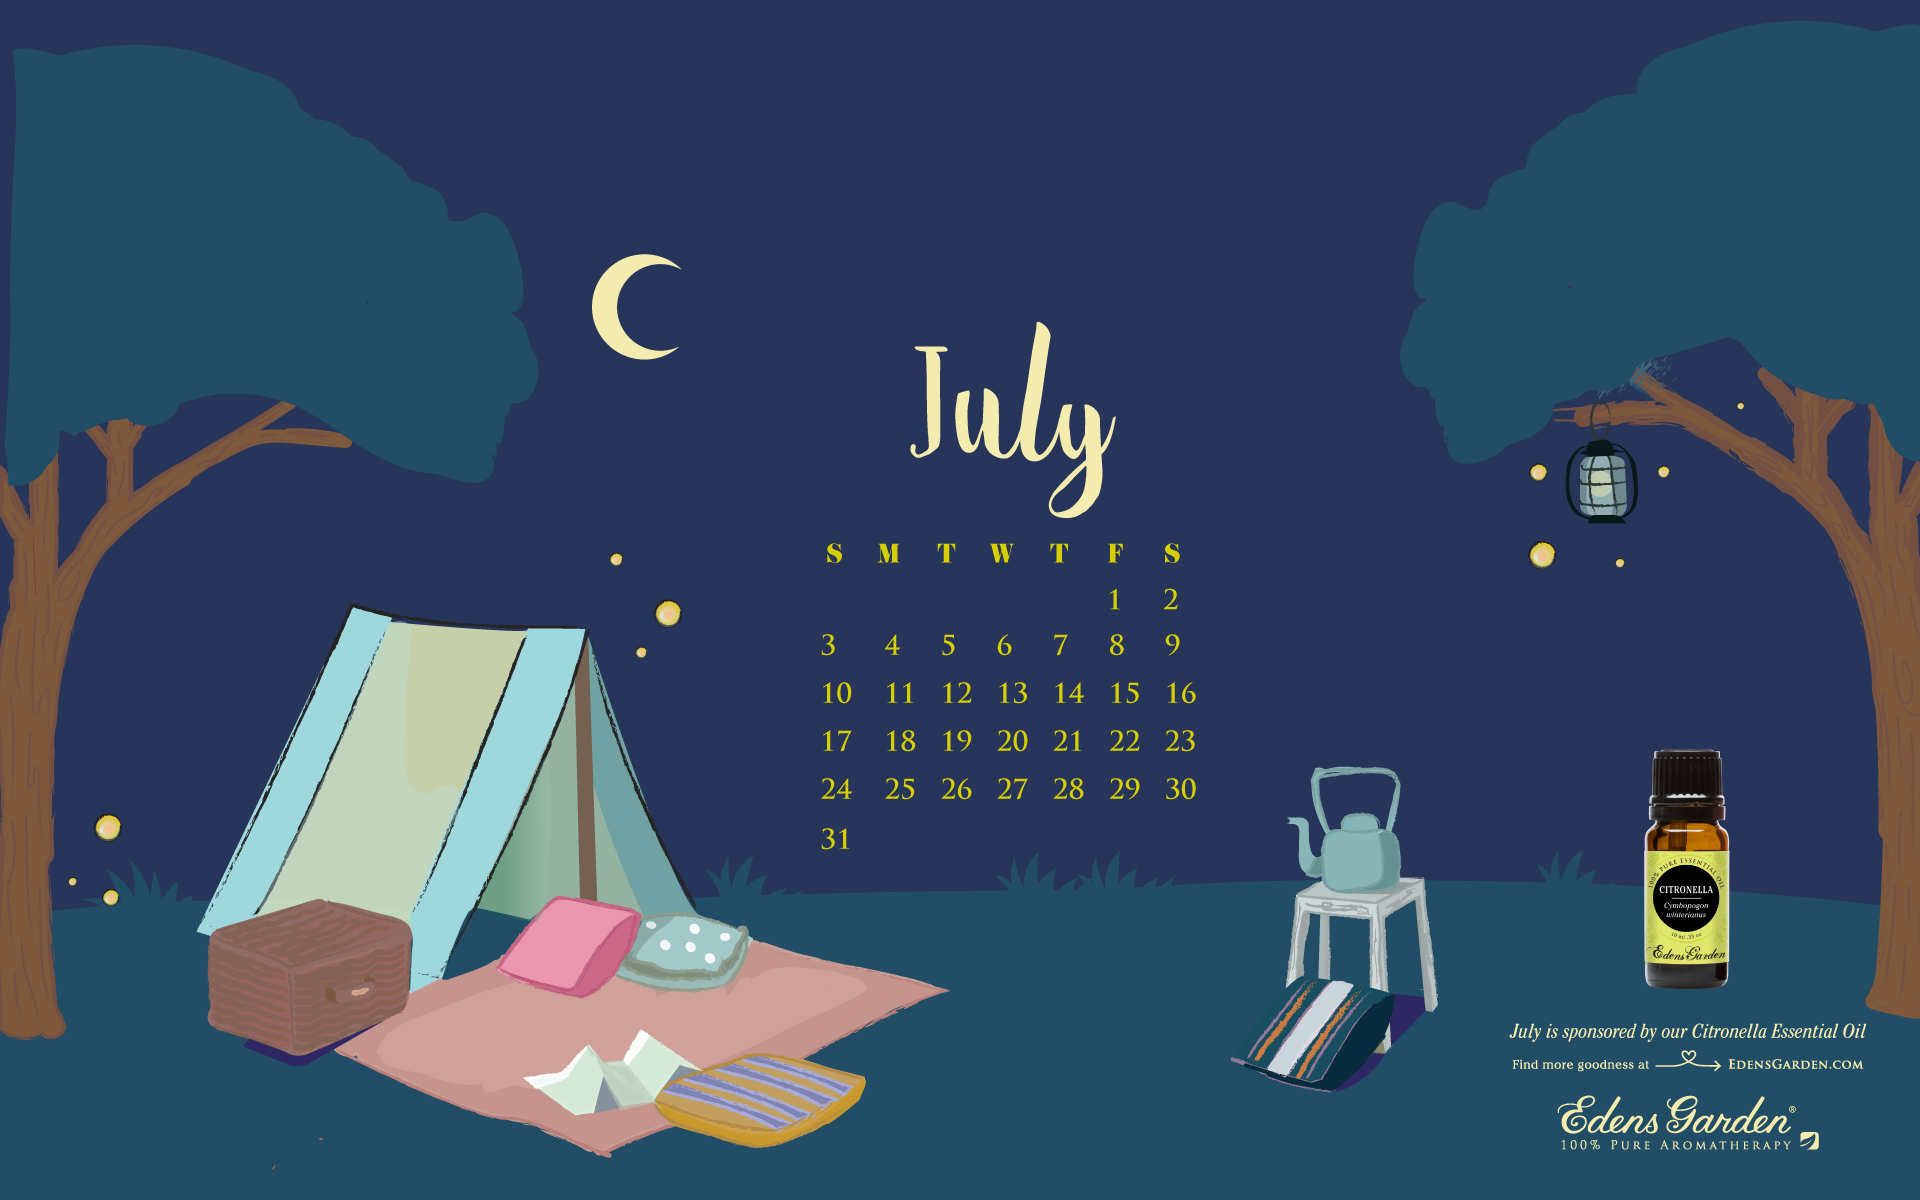 Here we are, already in July! The year is a little past halfway over and there's still plenty of fun to be had. Keep track of your summer vacation plans, lunch